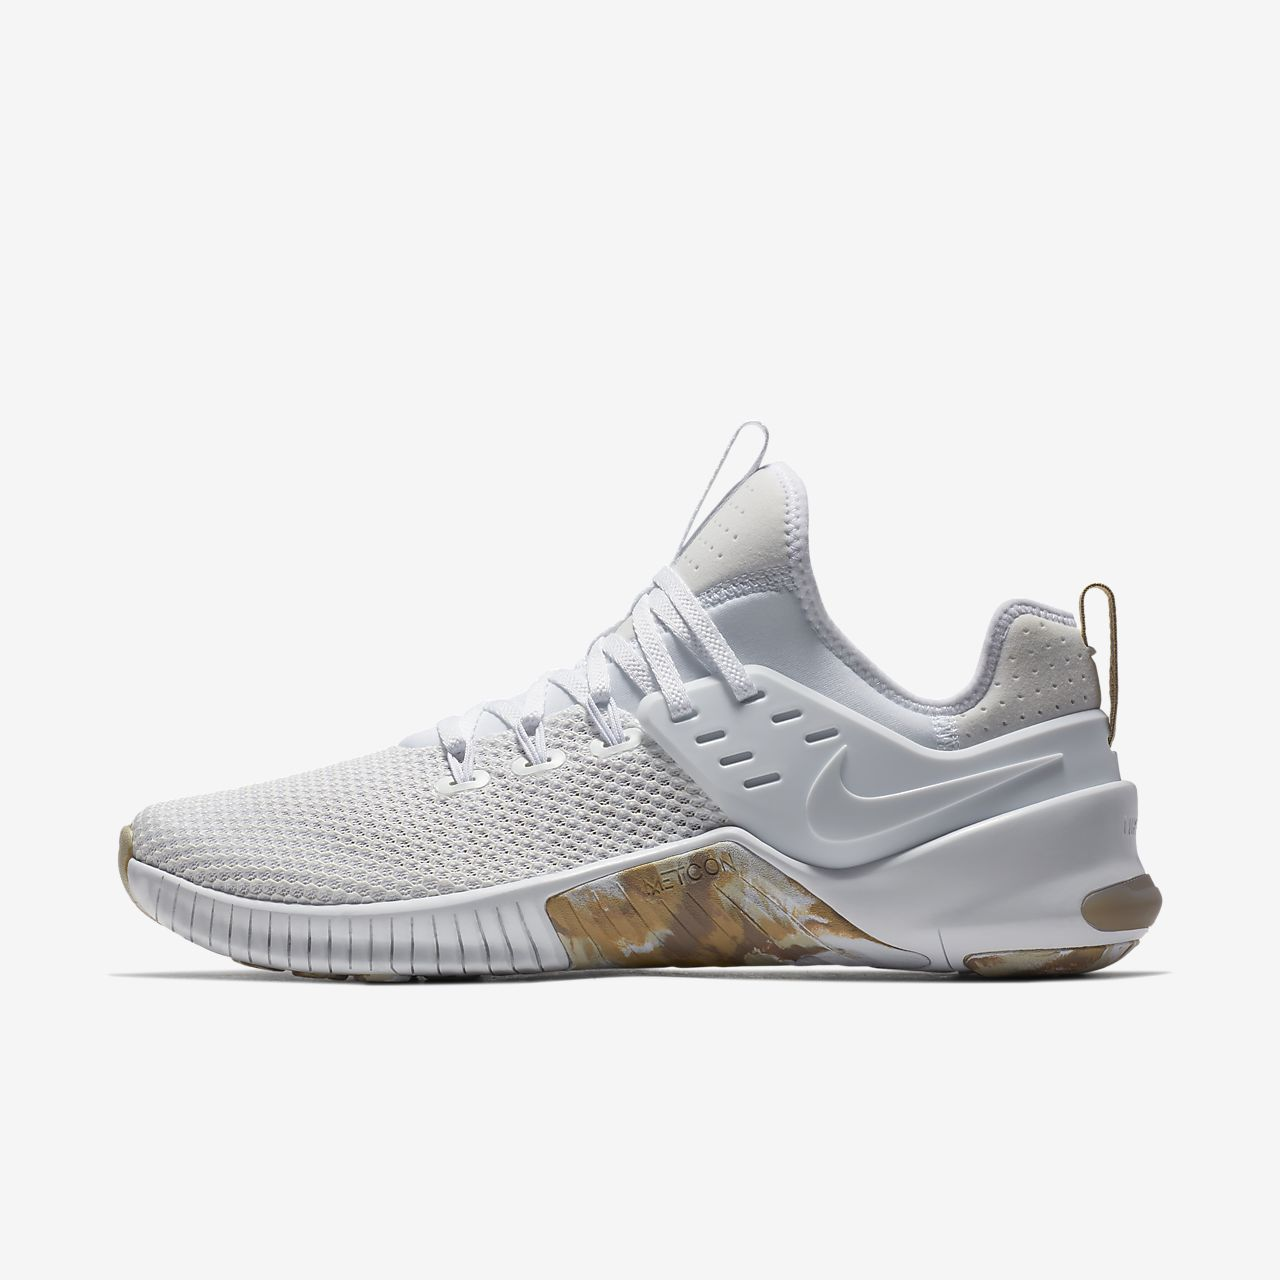 MEN'S NIKE FREE METCON  TRAINING SHOES WHITE / SAND MEN'S SELECT YOUR SIZE